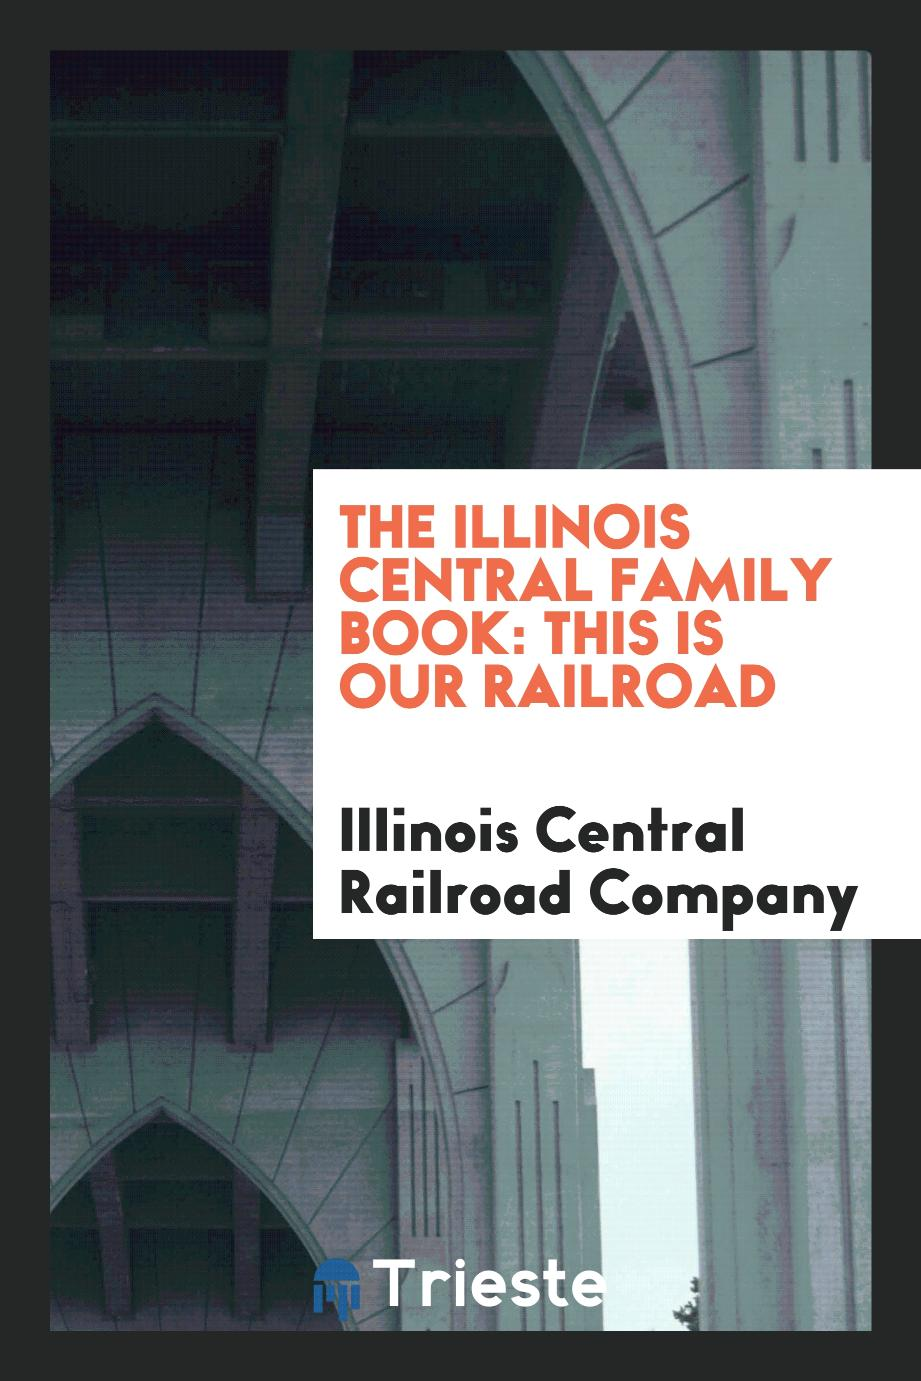 The Illinois Central Family Book: This is Our Railroad